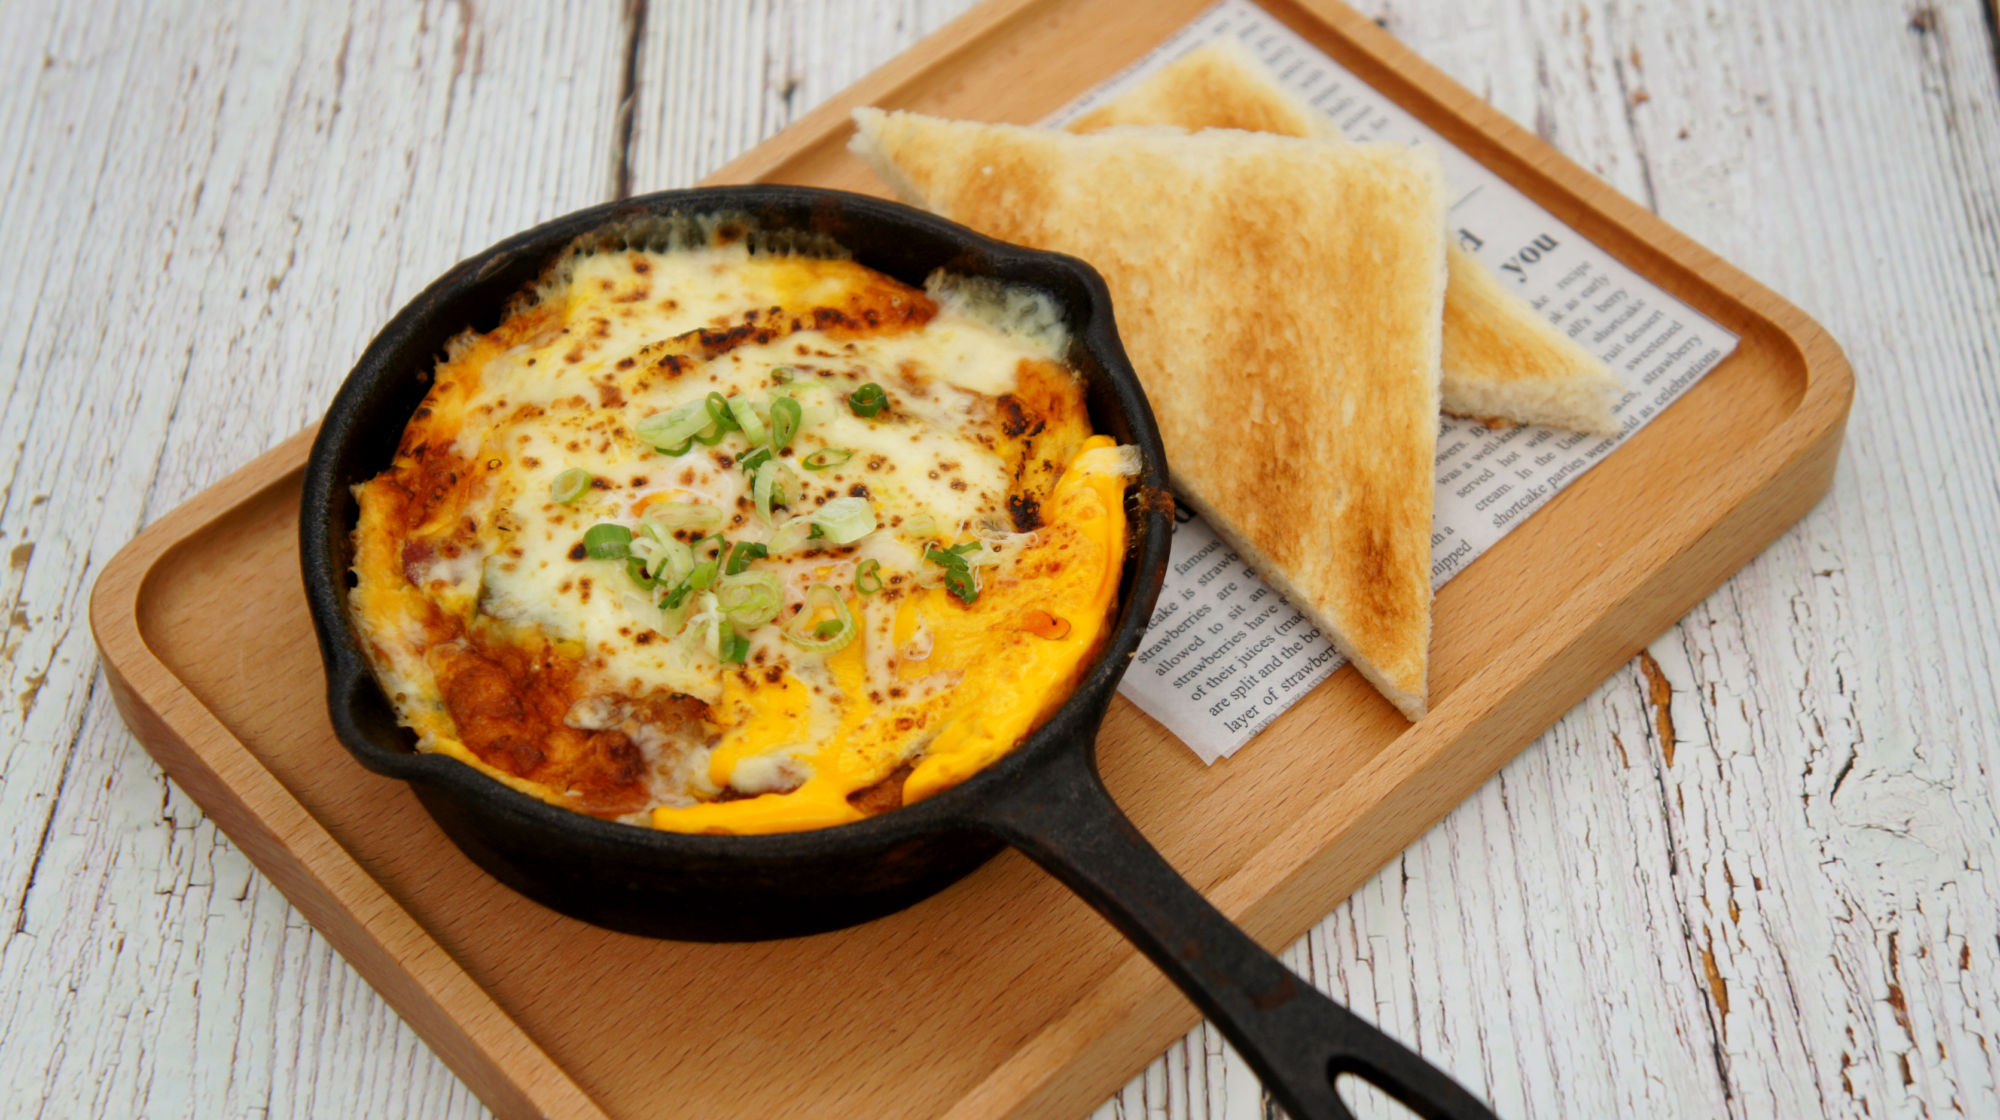 Baked Egg with Cheese